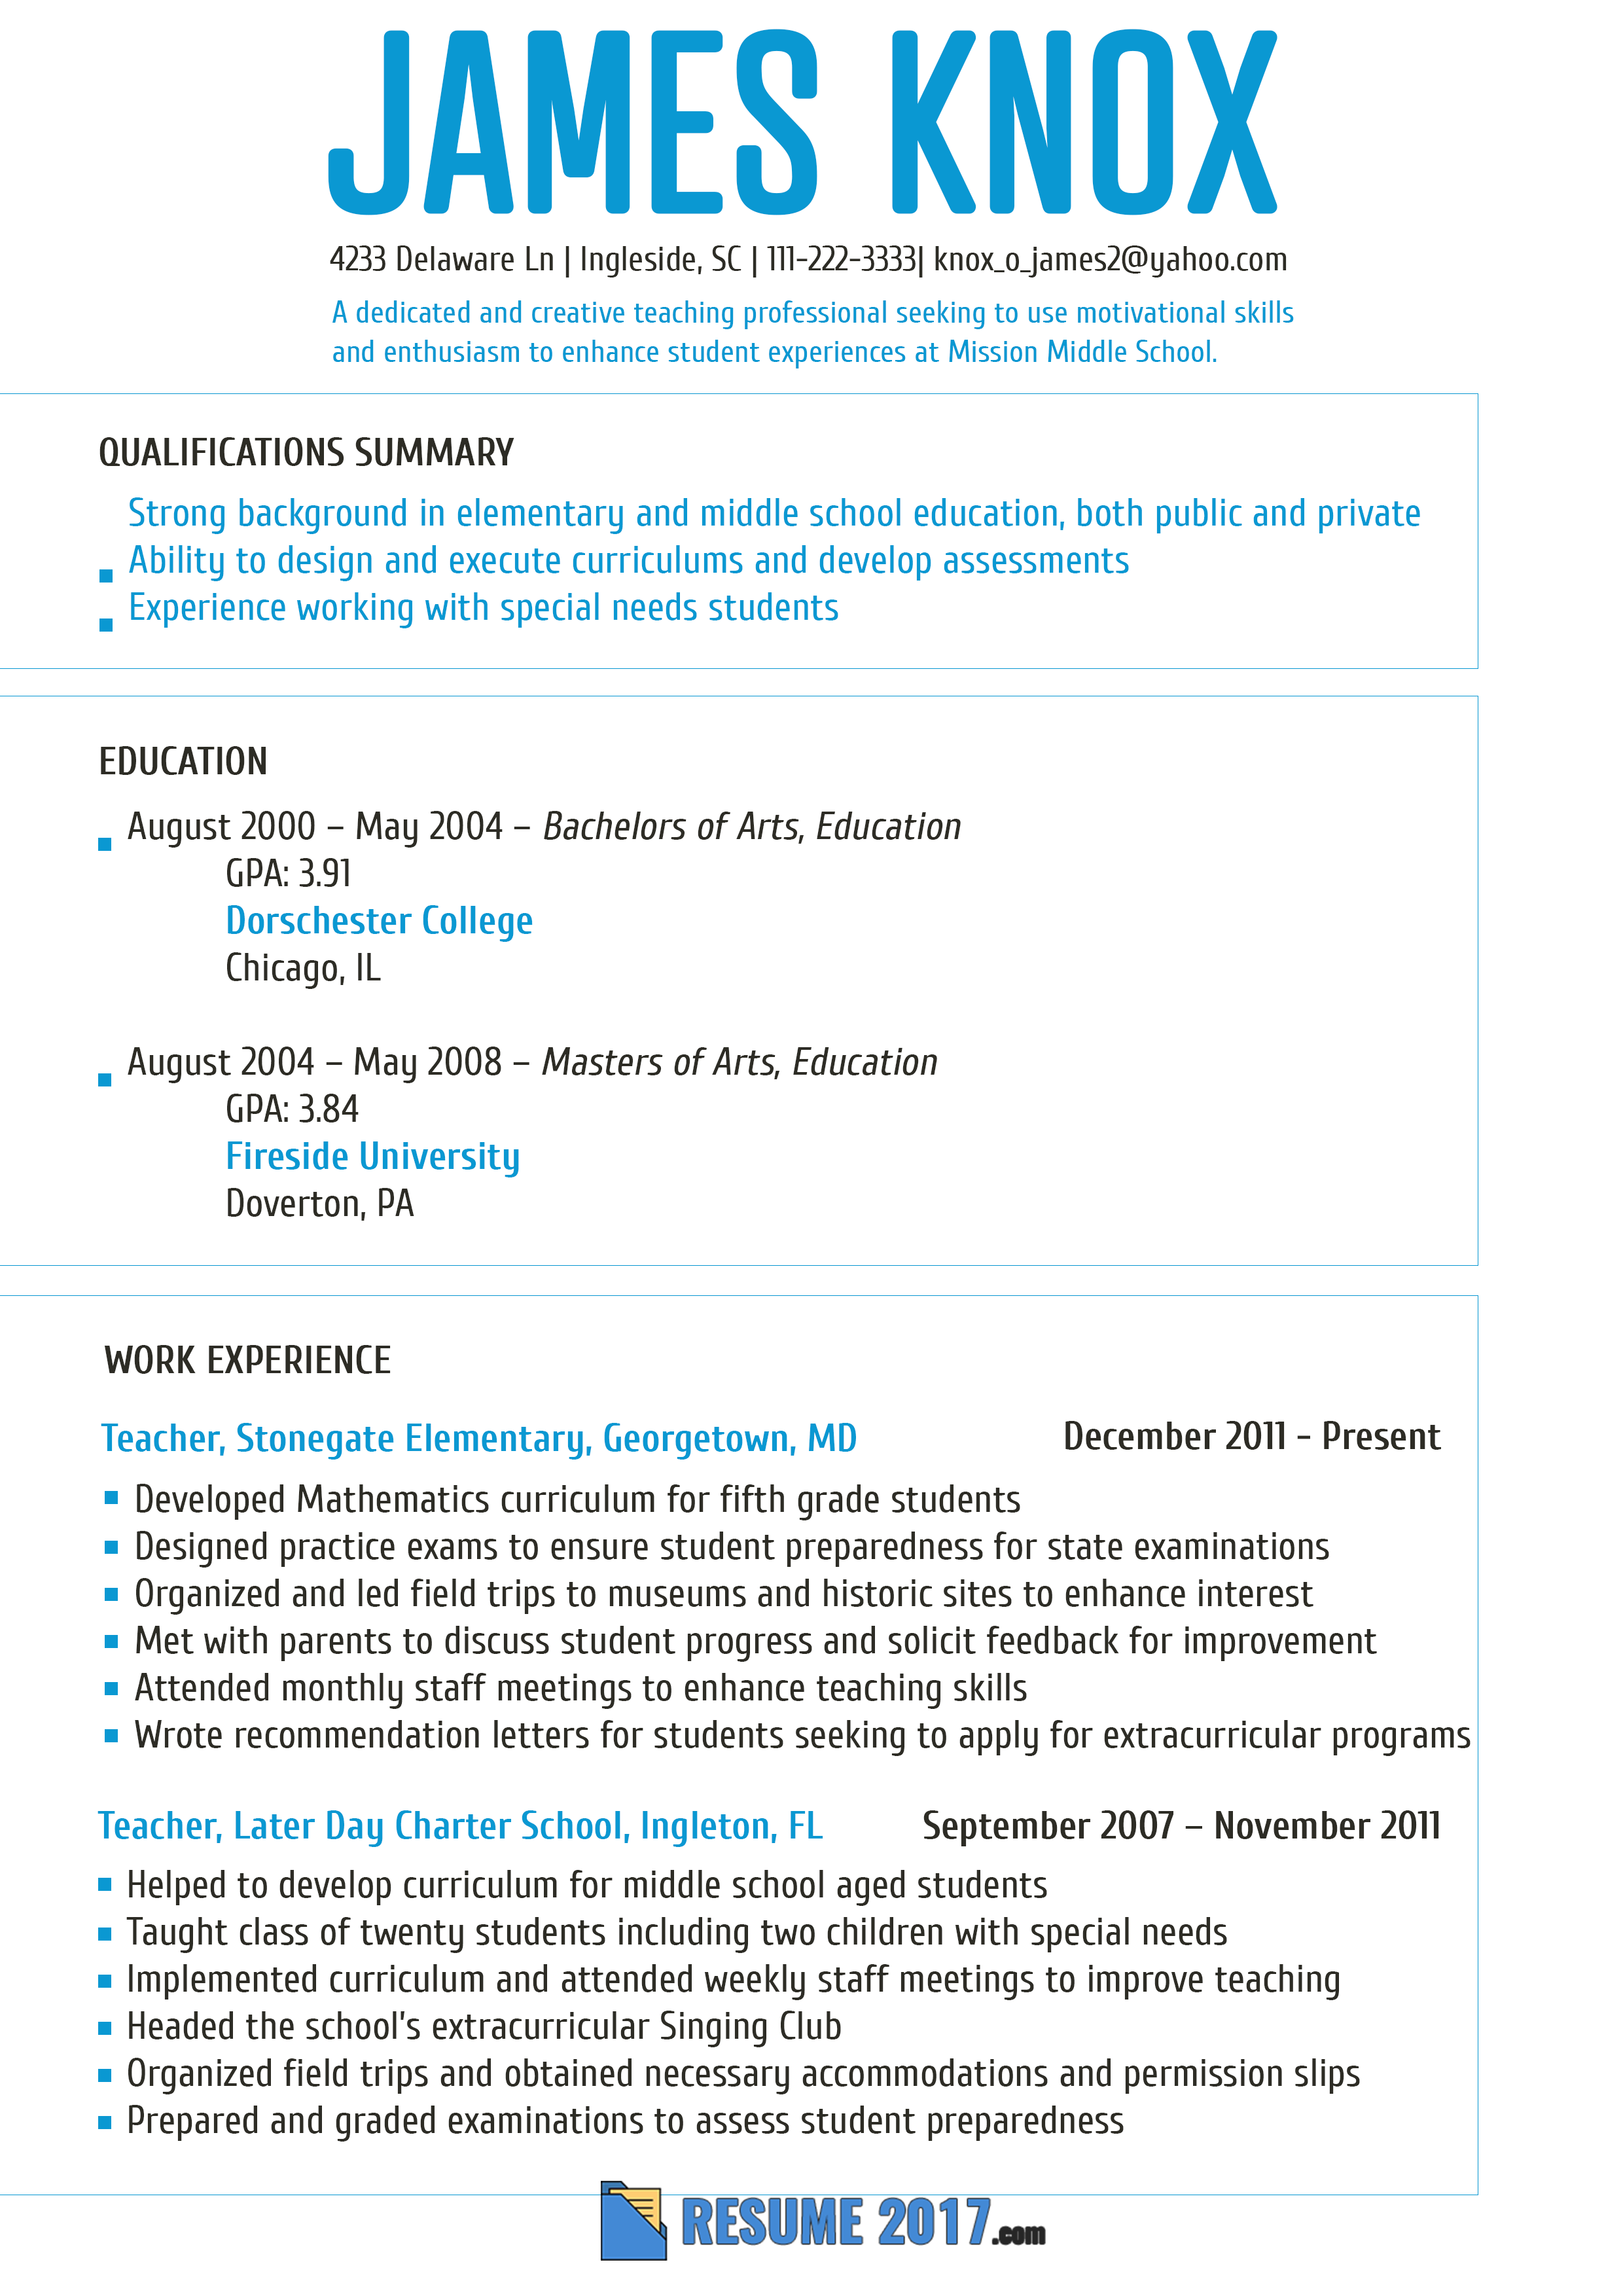 great teacher resume template 2018 that will make your resume leave a positive impact chekc this site and get more samples like this